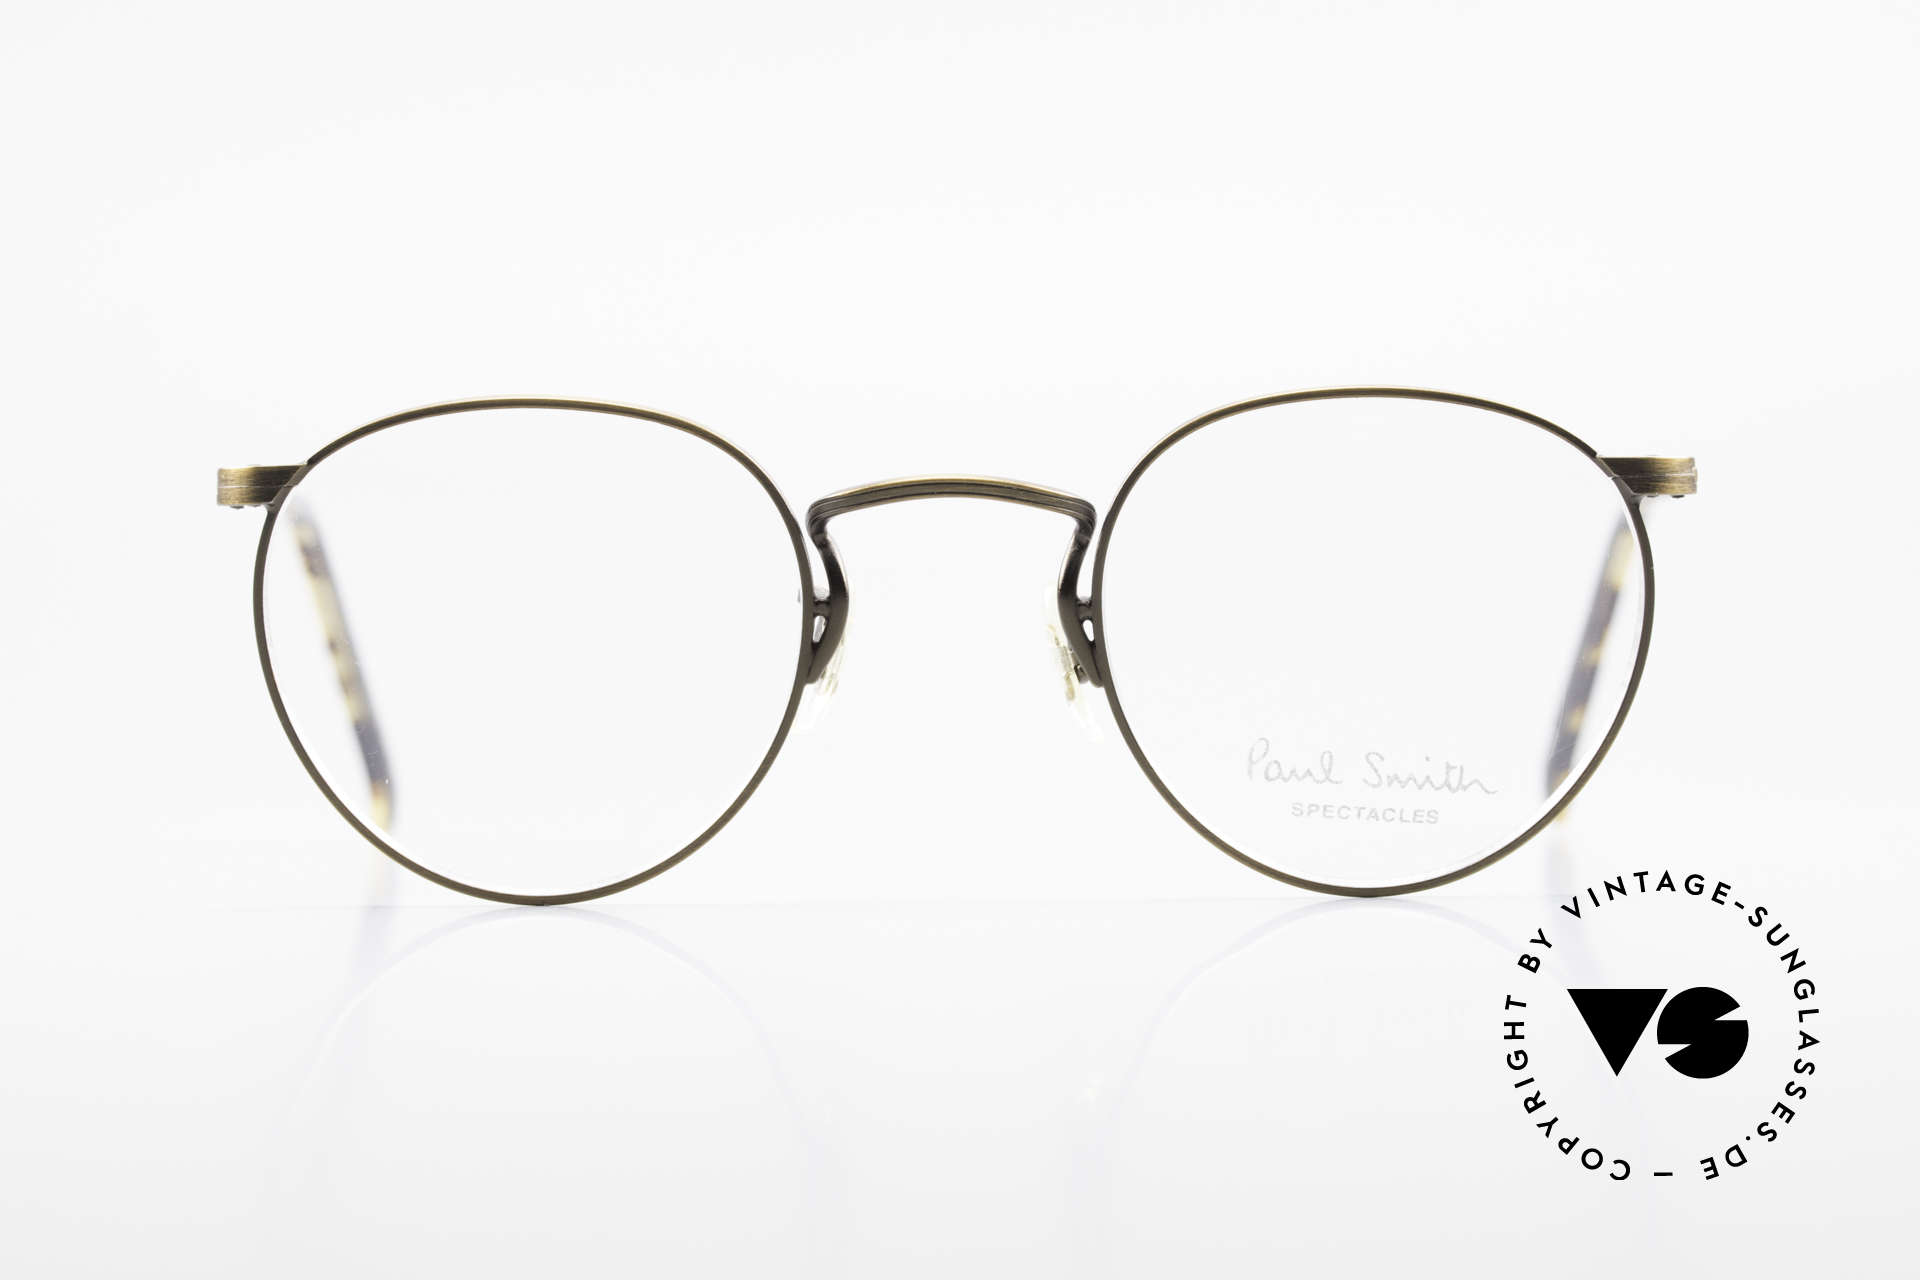 Paul Smith PS102 Small Panto Frame Japan Made, the time before PS Spectacles became licensed products, Made for Men